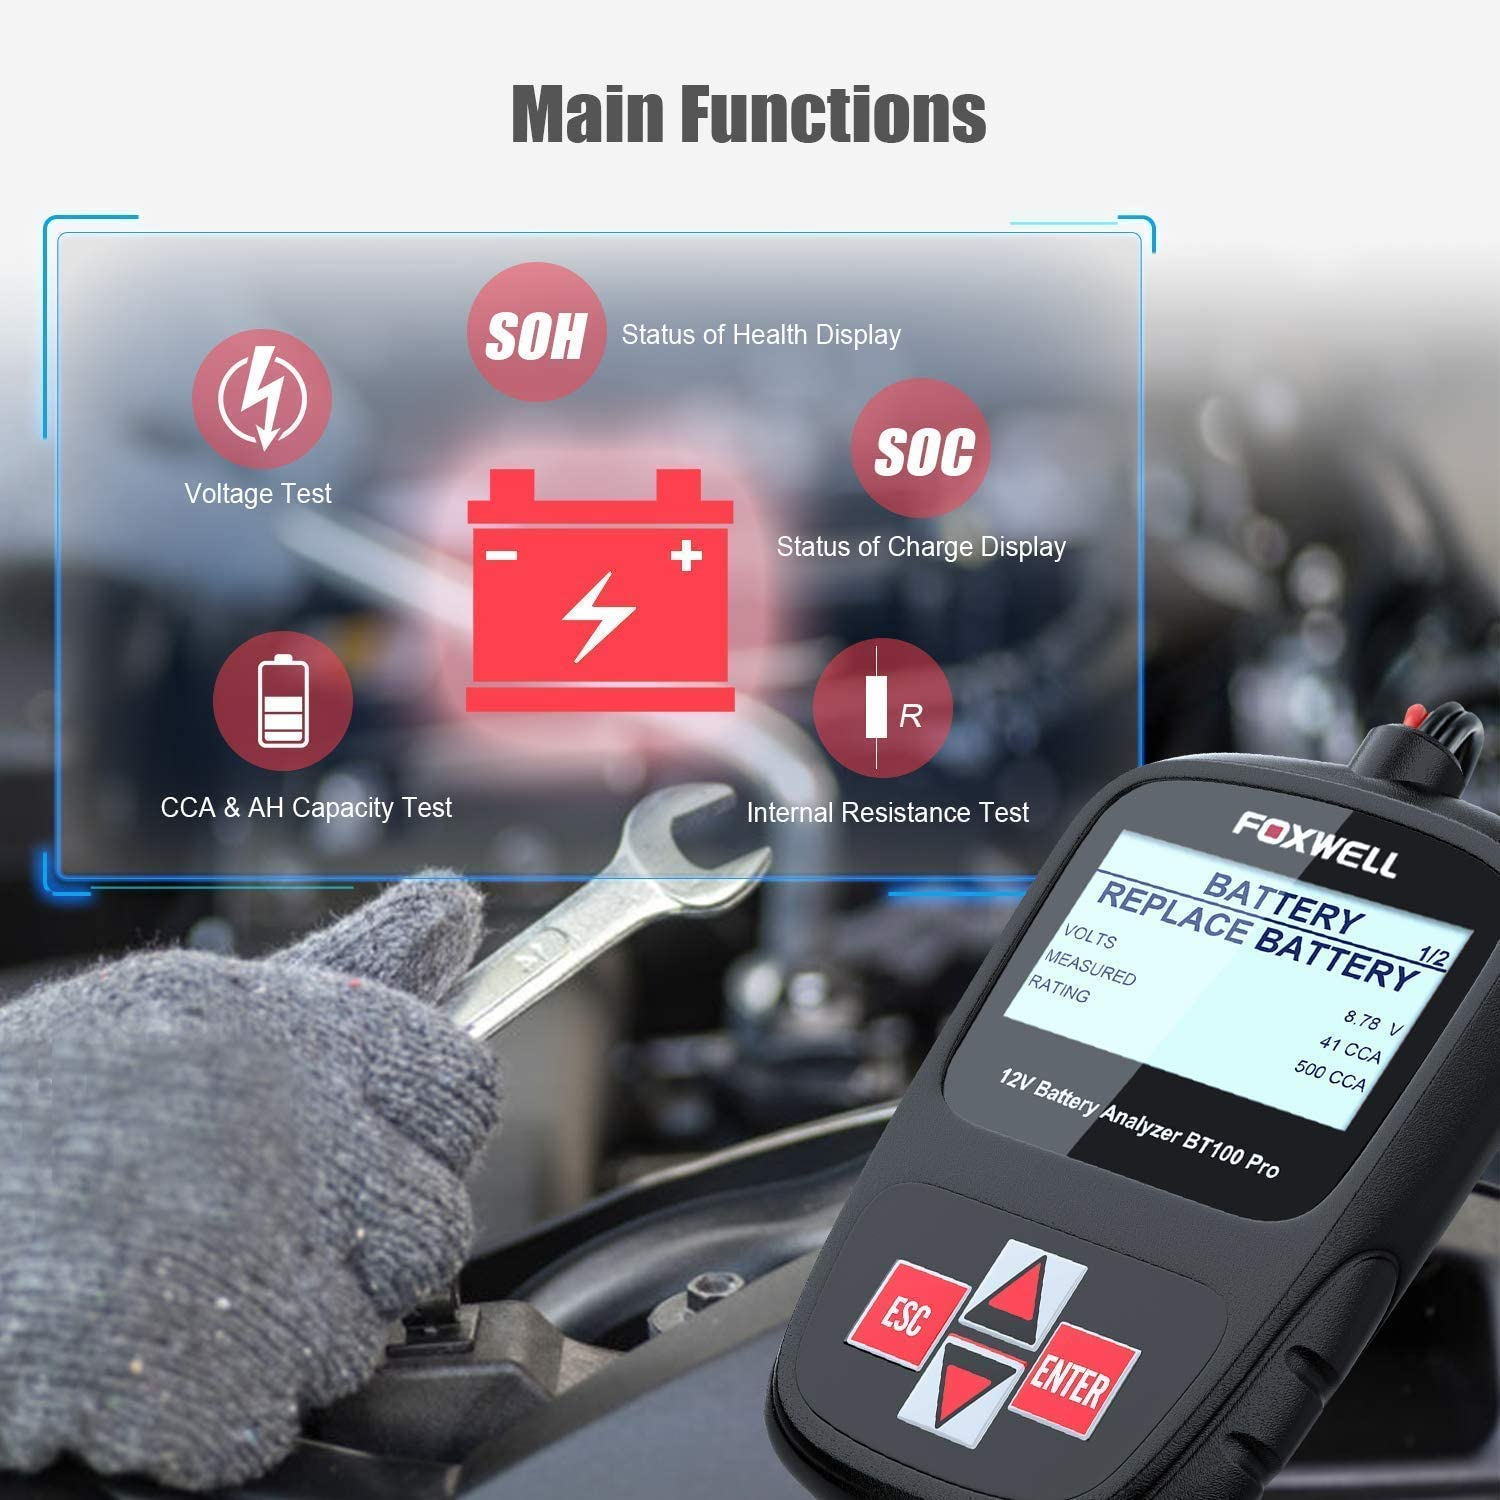 Battery Tester + CAR Scanner for BMW FOXWELL Professional Diagnostic Tool Set